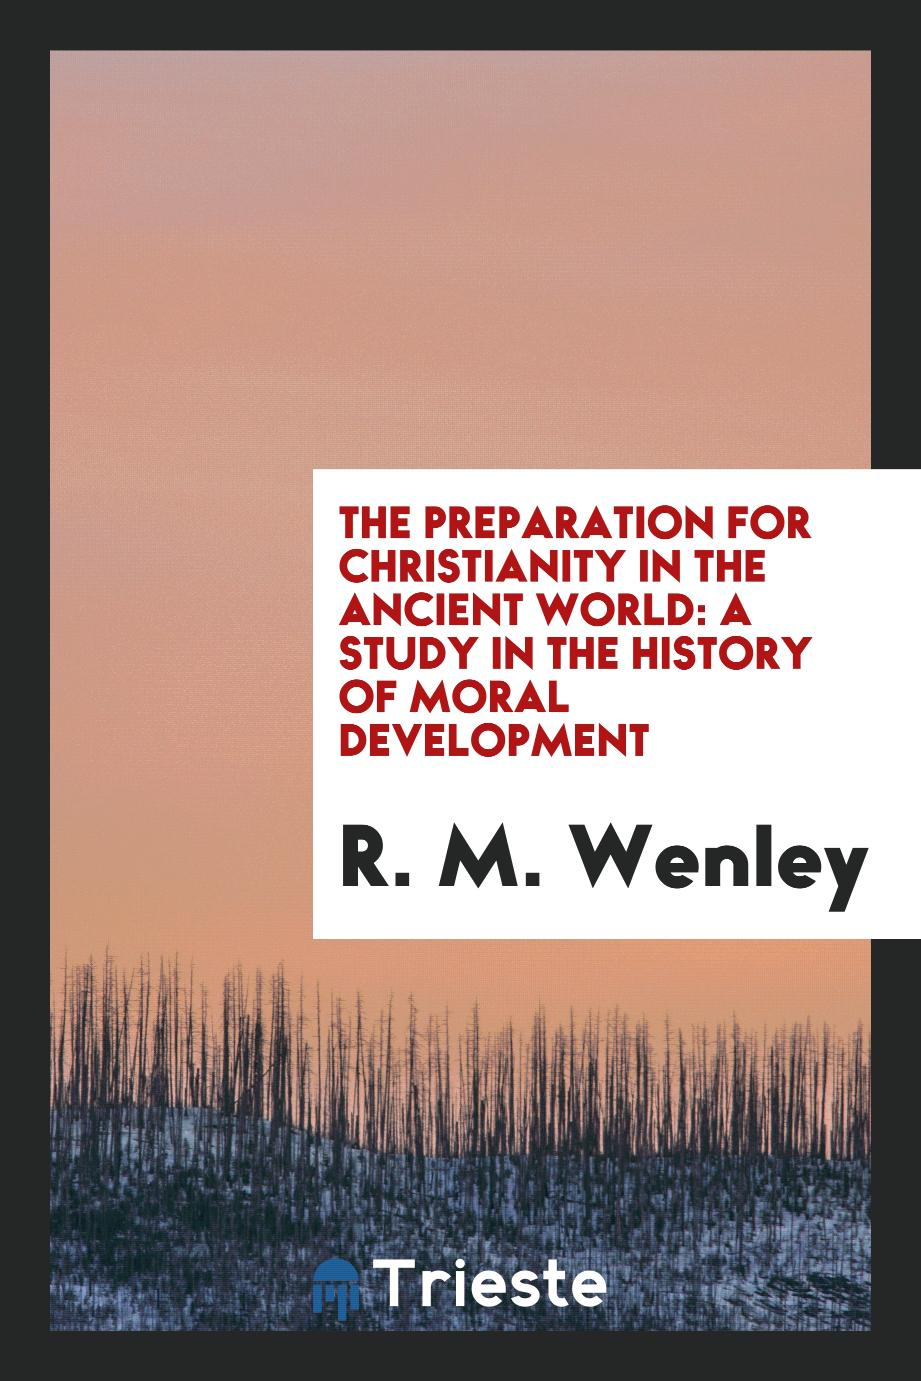 The preparation for Christianity in the ancient world: a study in the history of moral development